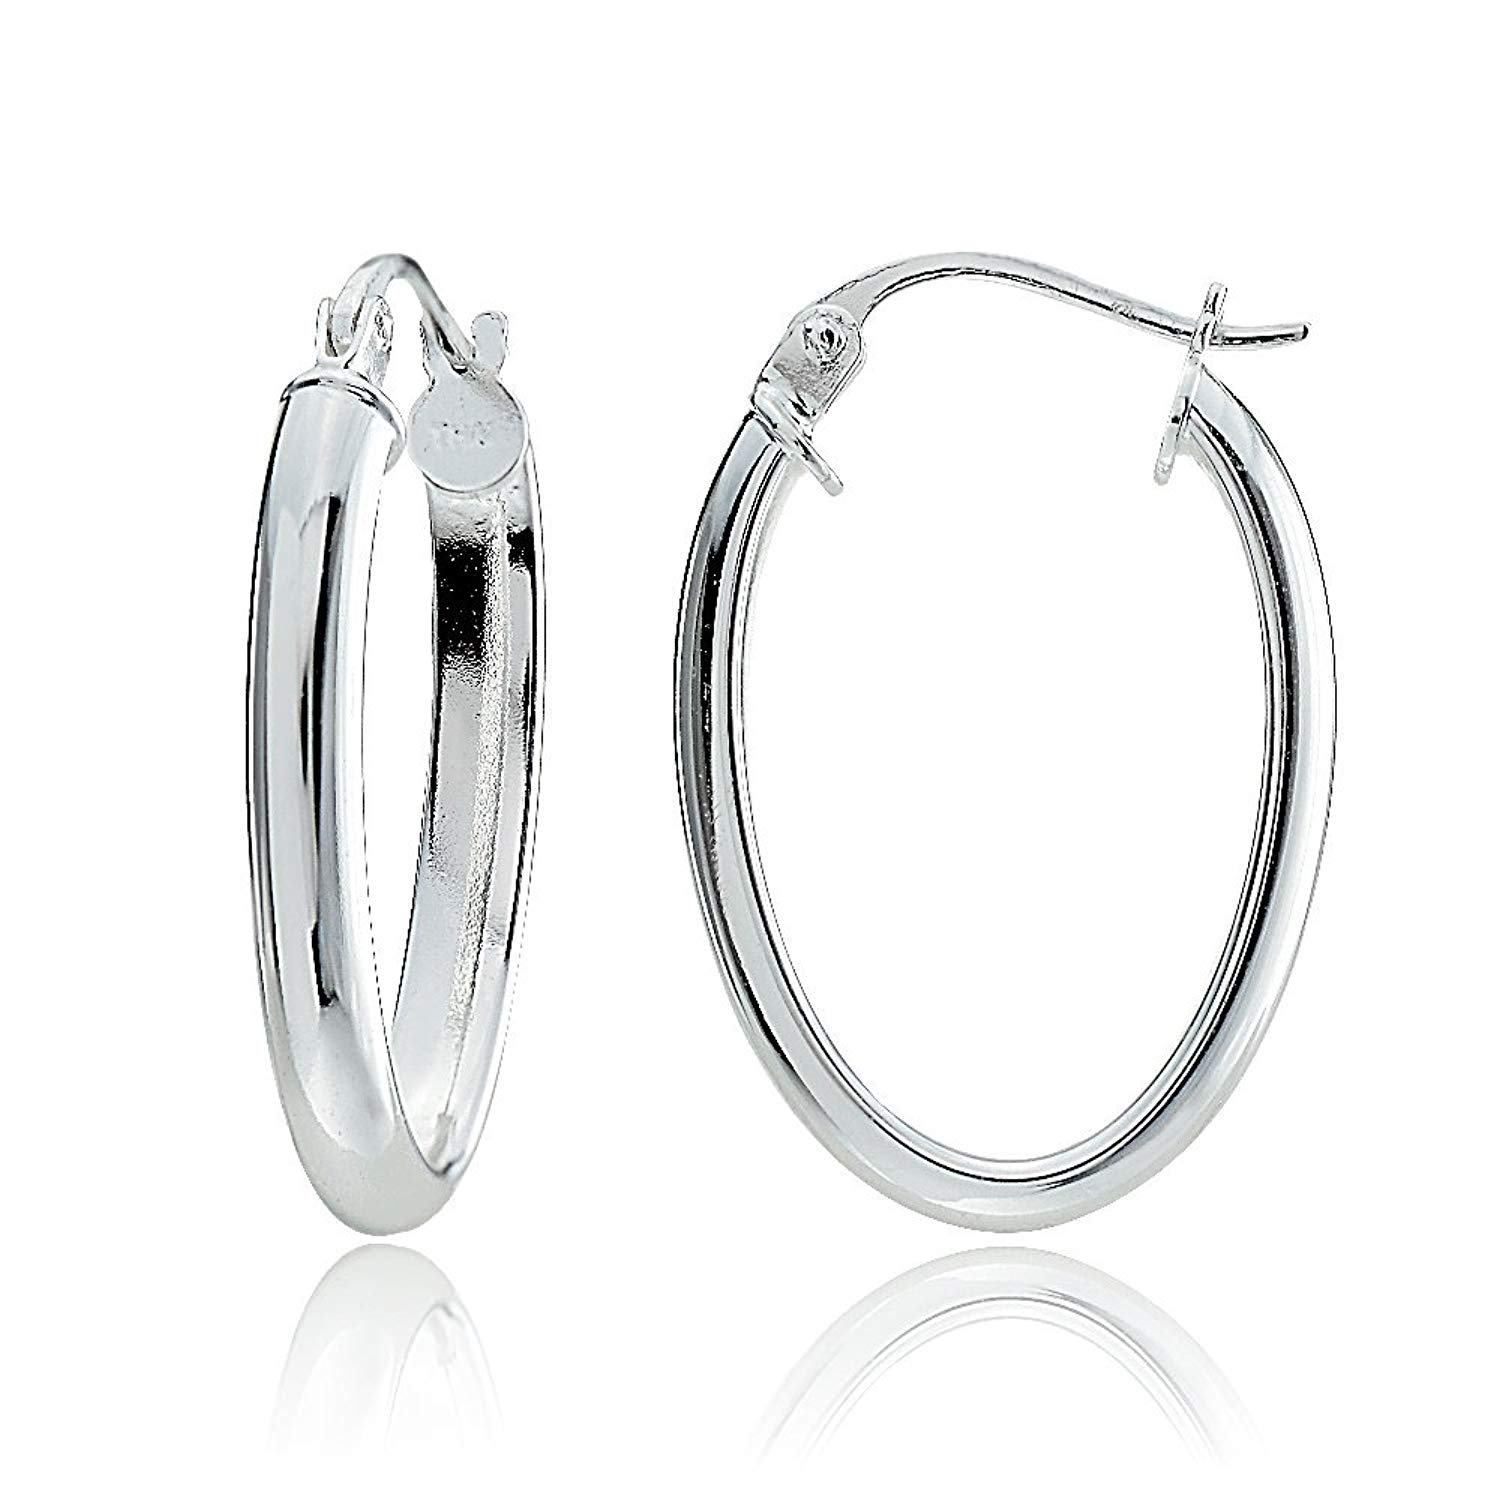 Cheap Solid Silver Earrings Hoops find Solid Silver Earrings Hoops